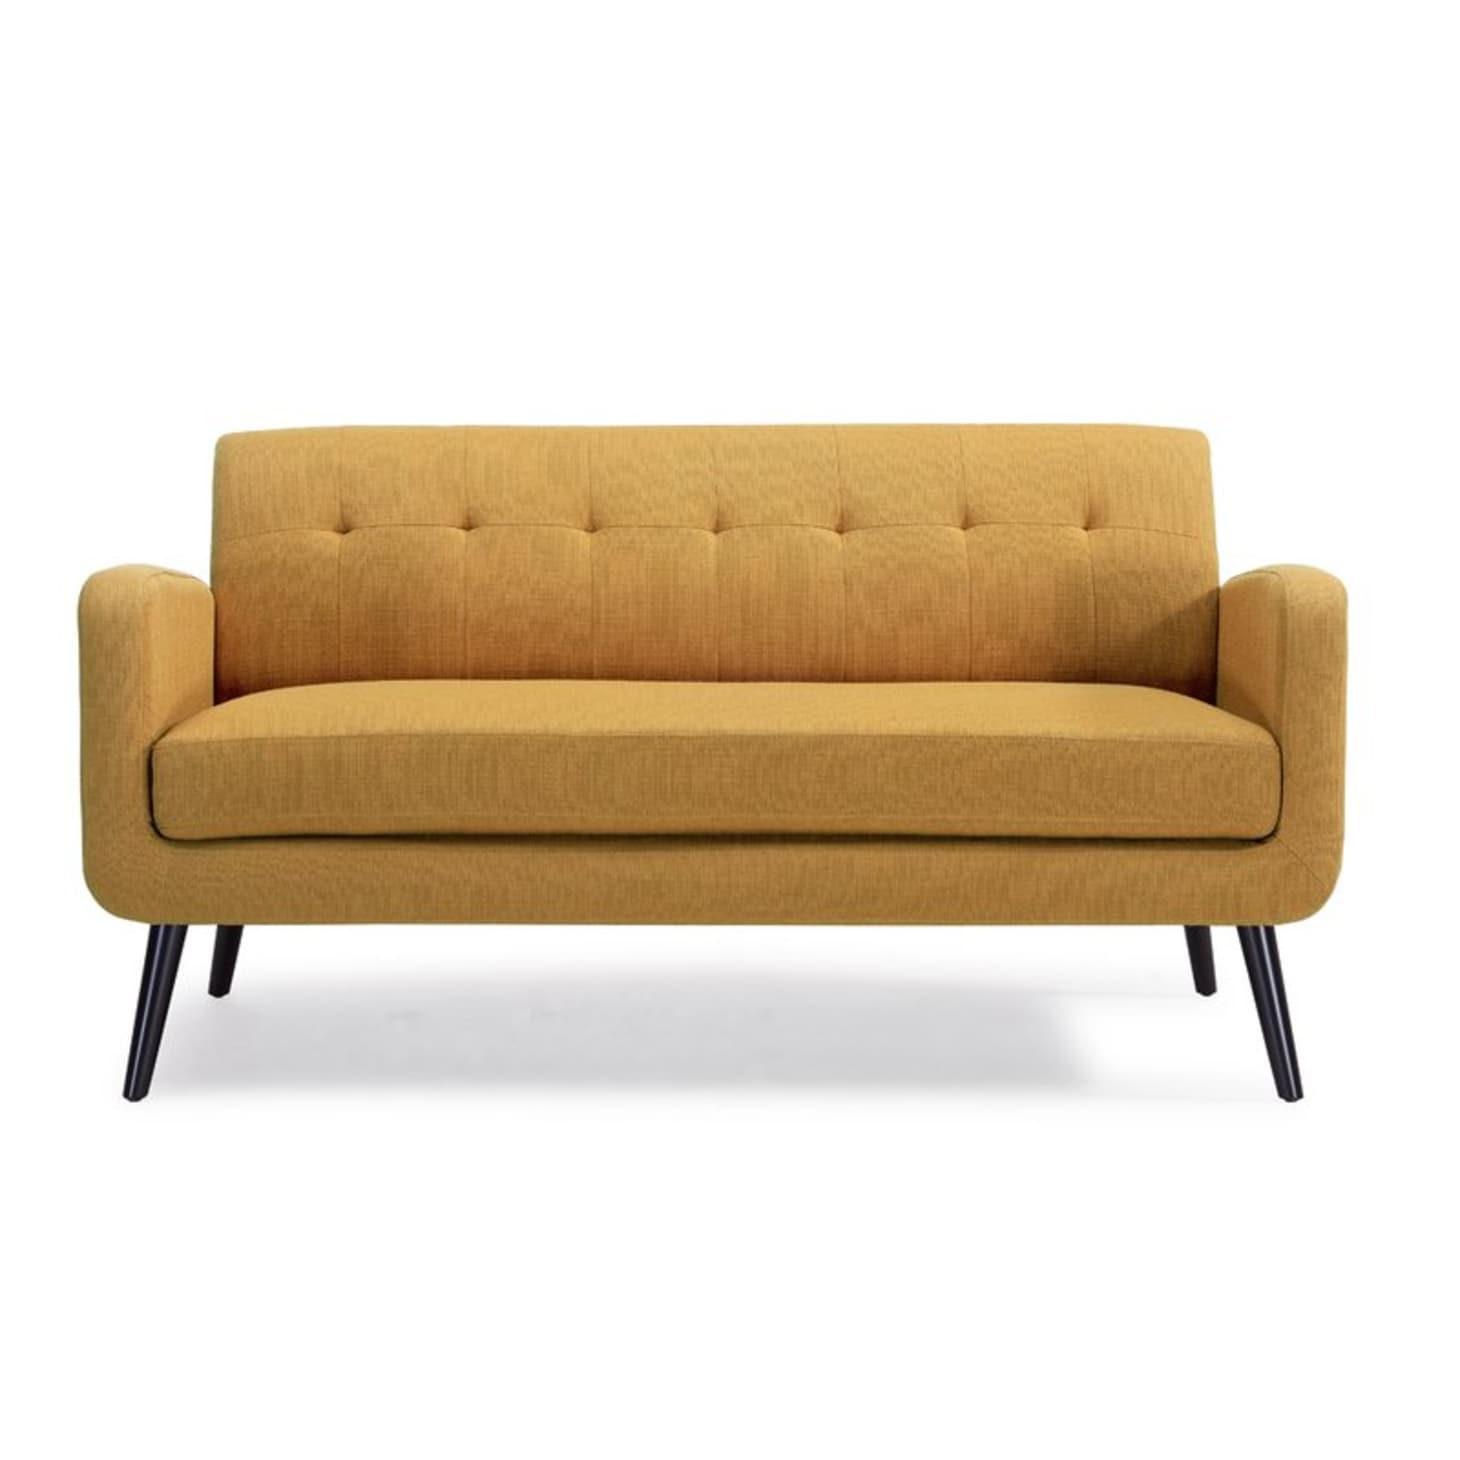 Awe Inspiring The Best Couches For Under 500 Apartment Therapy Cjindustries Chair Design For Home Cjindustriesco